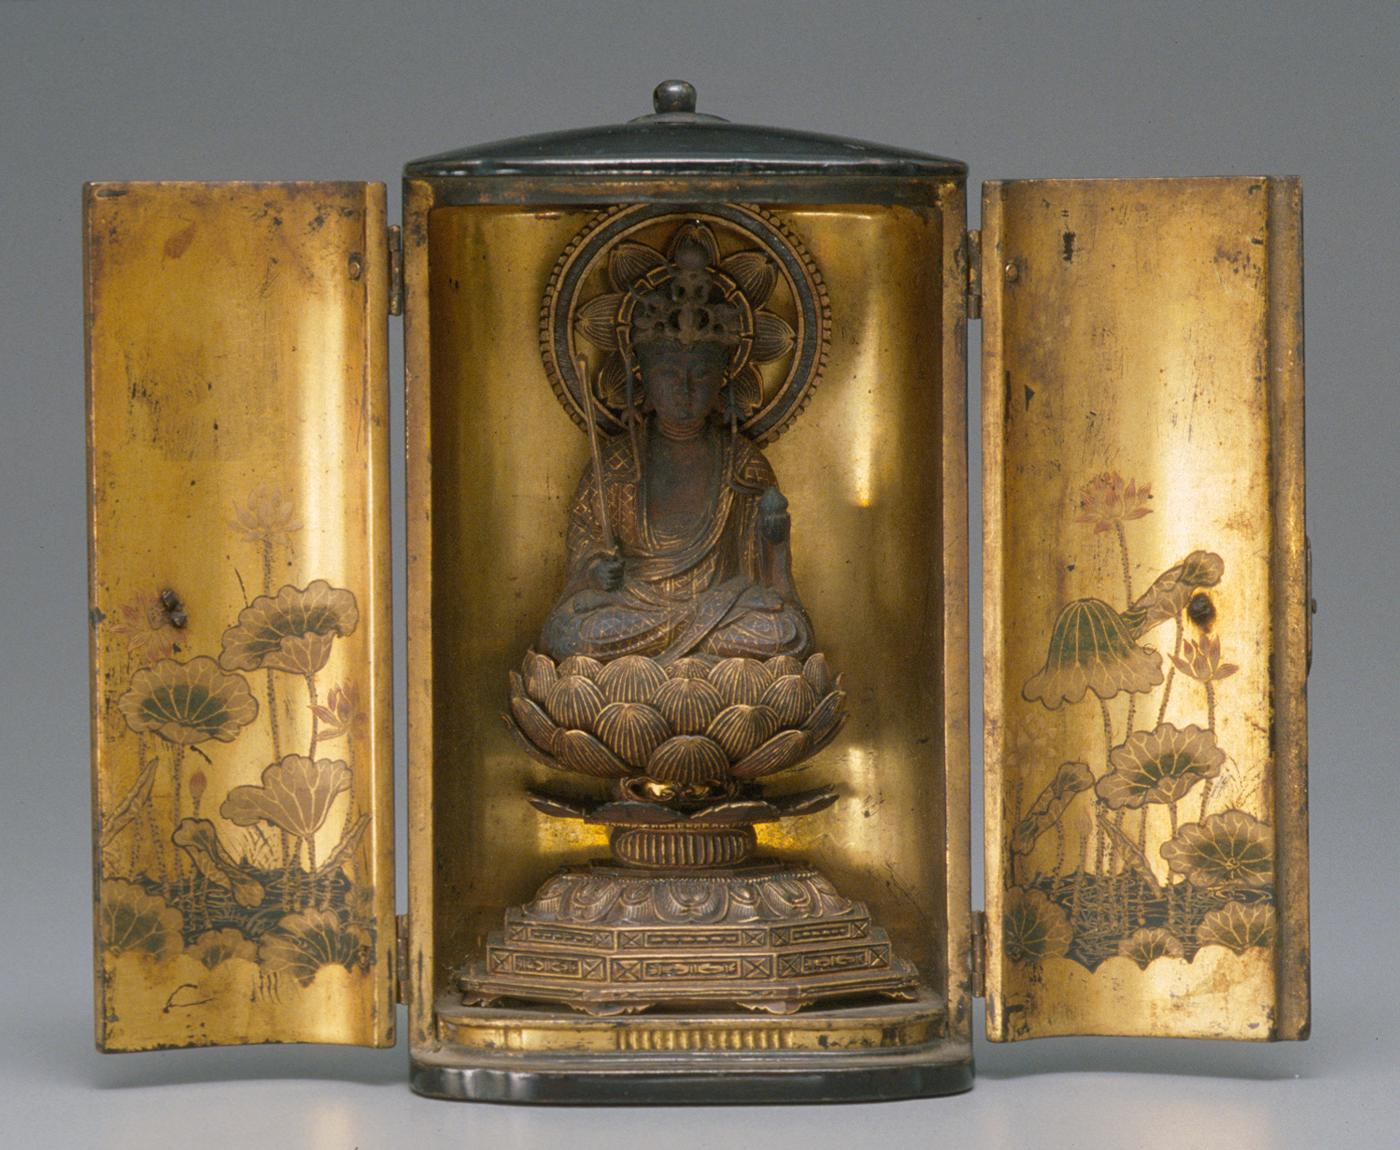 Portable shrine: Bodhisattva Kokuzo, 19th century, Japanese (Edo period, 1603-1868), wood with gold and black lacquer, polychrome, and metal fittings, Eugene Fuller Memorial Collection, 34.183. On view in Going for Gold, third floor, SAM downtown, through Sunday, 8 December.